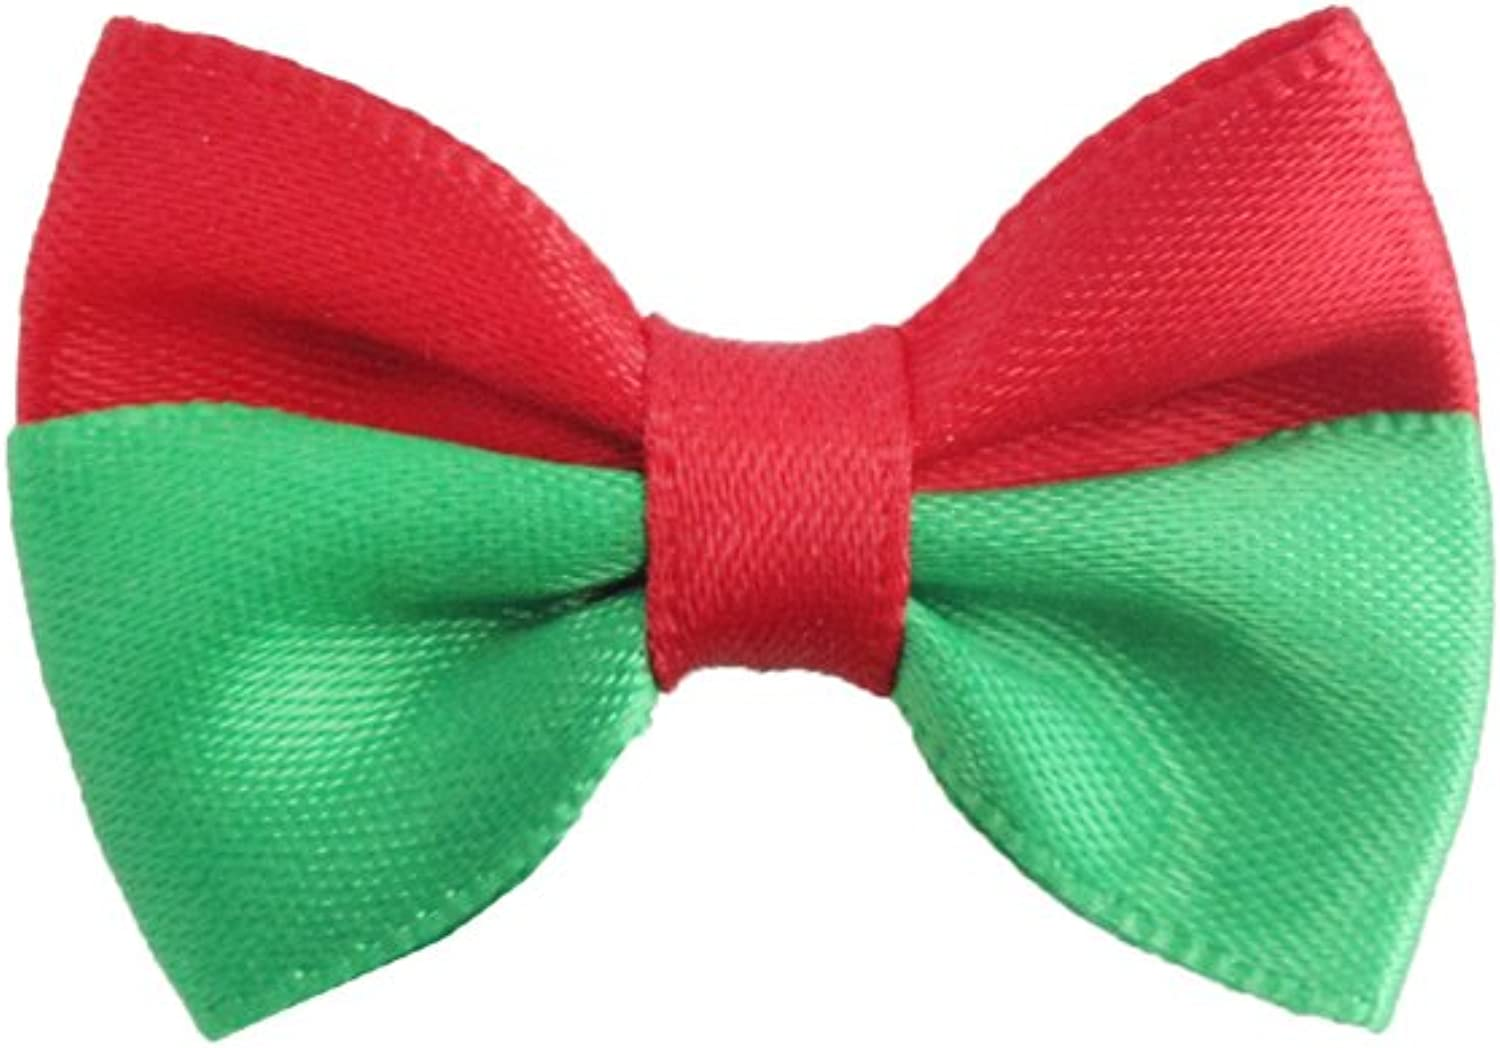 100PCs Handmade Christmas Dog Bow Tie Red Green Stripe Merry Christmas Dress up Puppy Pet